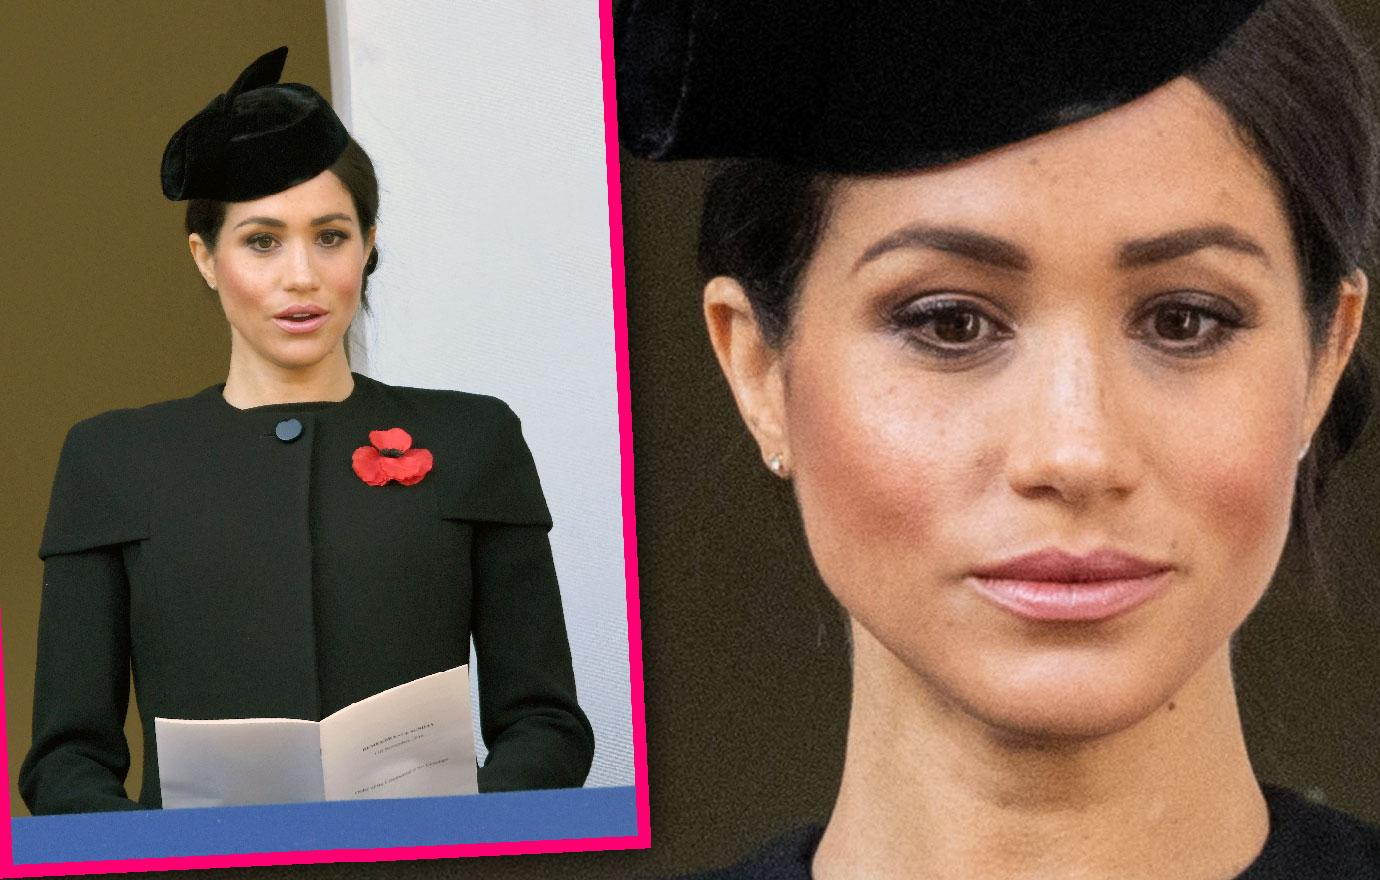 Meghan Markle Attends Remembrance Day Amid Diva Rumors